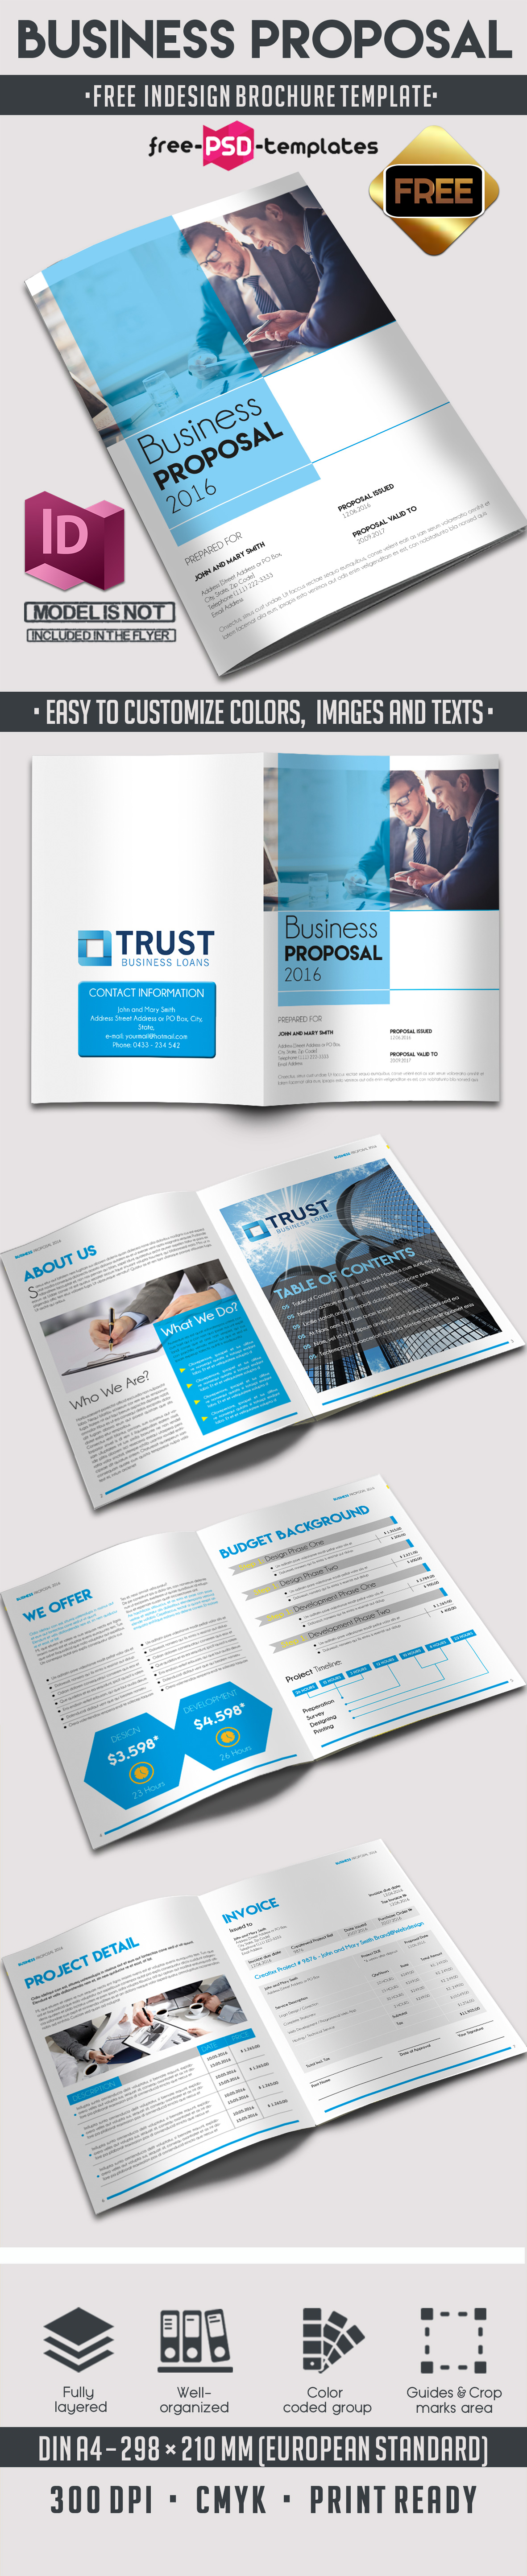 Free business proposal brochure 8 pages a4 free psd for 4 page brochure template free